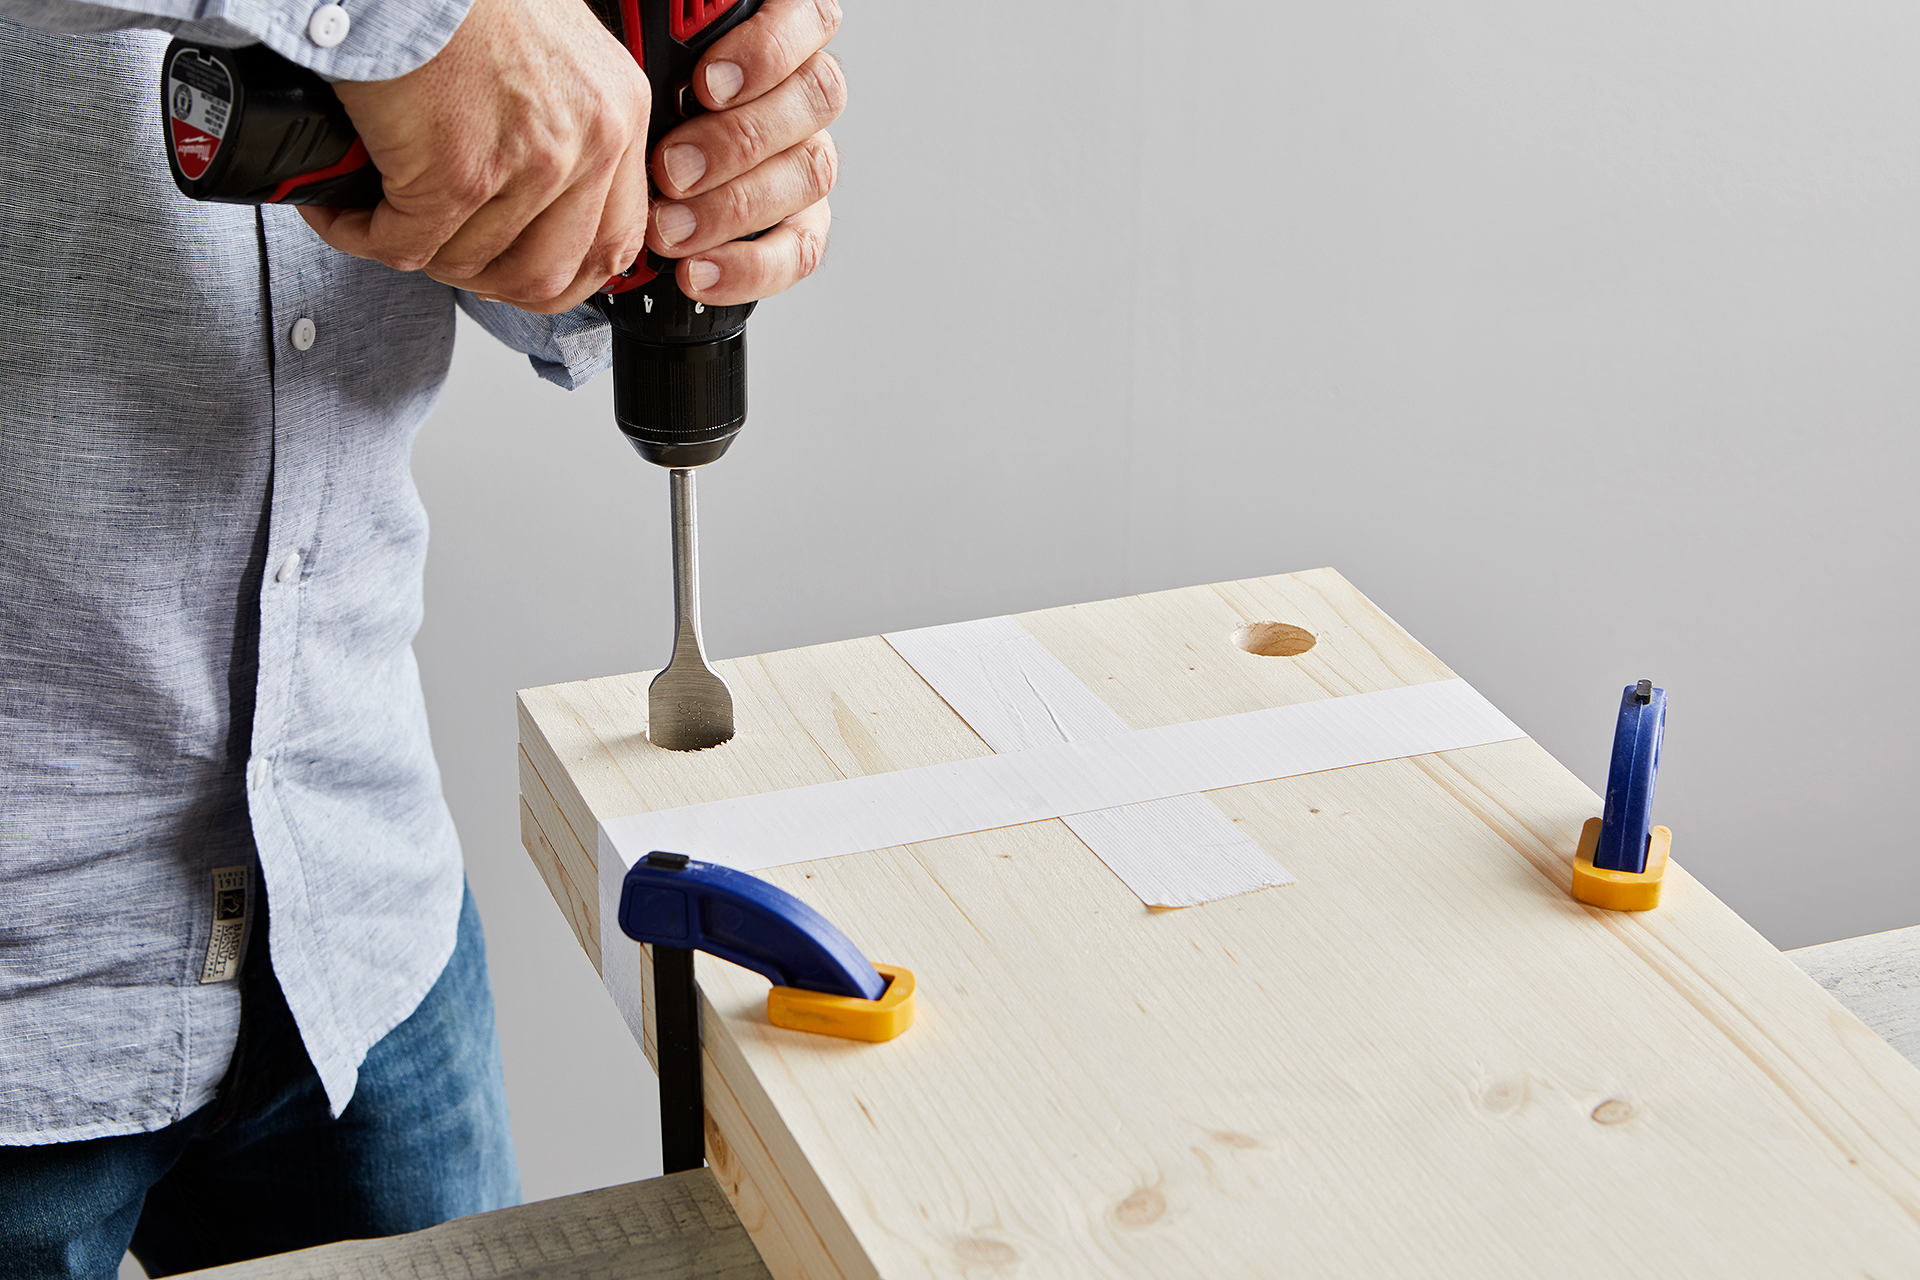 drill holes into boards attached together